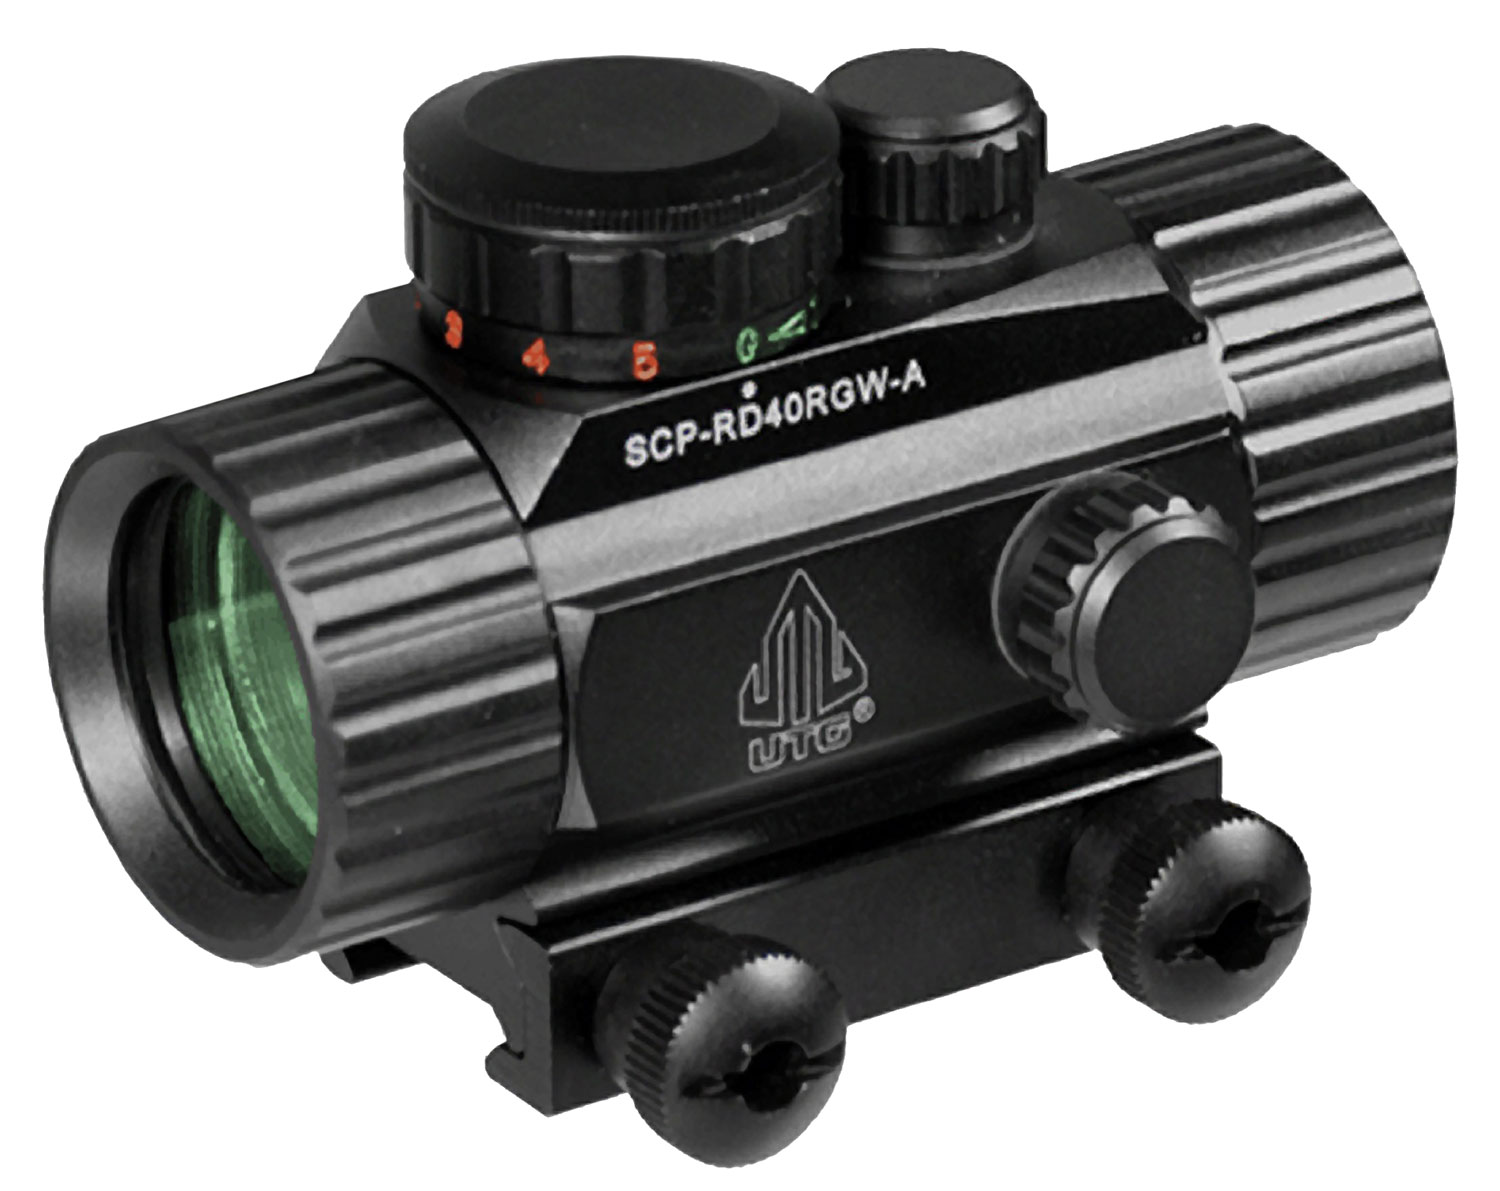 UTG SCP-RD40RGW CQB Dot Sight 1x 30mm Obj Unlimited Eye Relief 4 MOA Black